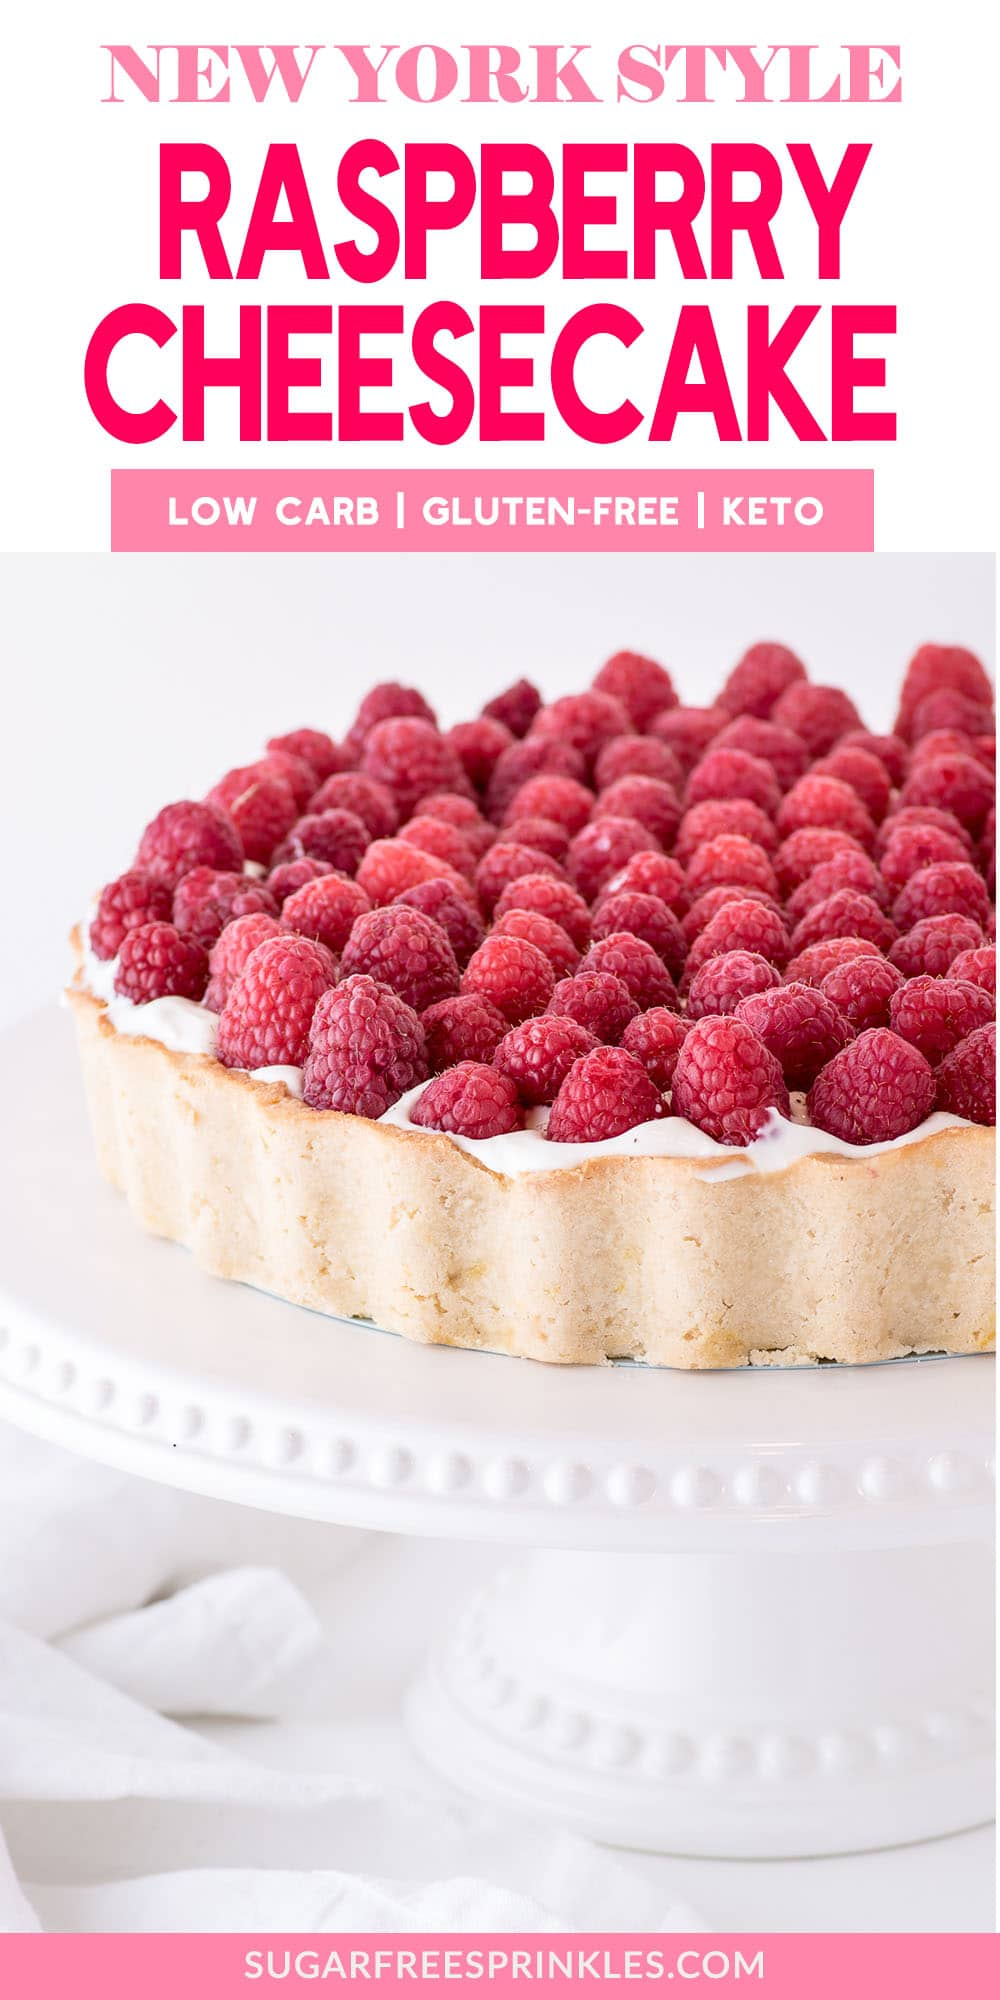 This low carb raspberry cheesecake is dense and rich and perfect for a holiday meal. This low carb baking recipe is dense and rich, creamy and decadent, sure to wow at any get-together. This raspberry cheesecake is also keto-friendly (with a few tweaks), and gluten-free. You can also make this low carb cheesecake in advance and freeze for up to a month. #lowcarbcheesecake #raspberrycheesecake #ketocheesecake #glutenfreecheesecake #lowcarbdesserts #lowcarbholidaydesserts